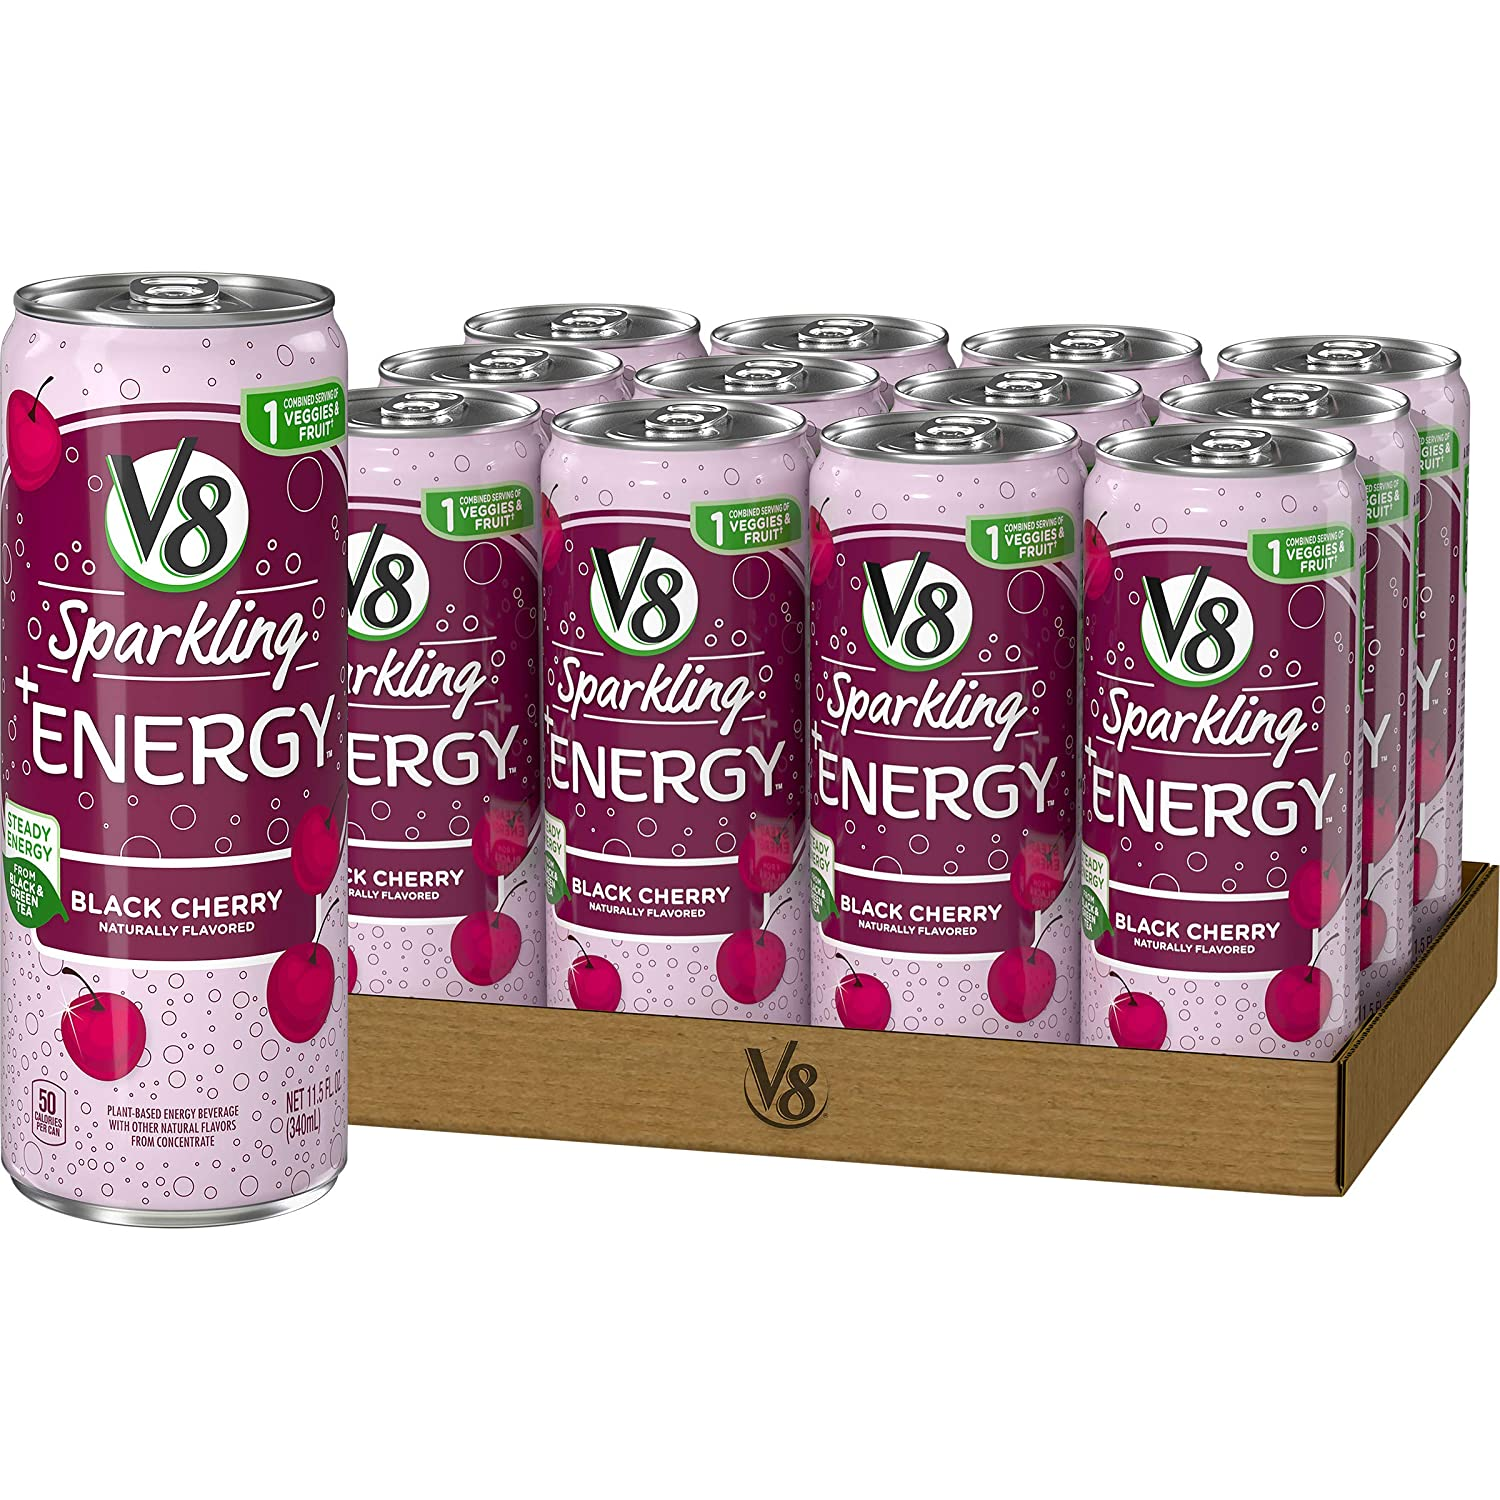 V8 Sparkling +Energy, Healthy Energy Drink, Natural Energy from Tea, 11.5 Oz Can, Black Cherry, 138 Fl Oz (Pack of 12)